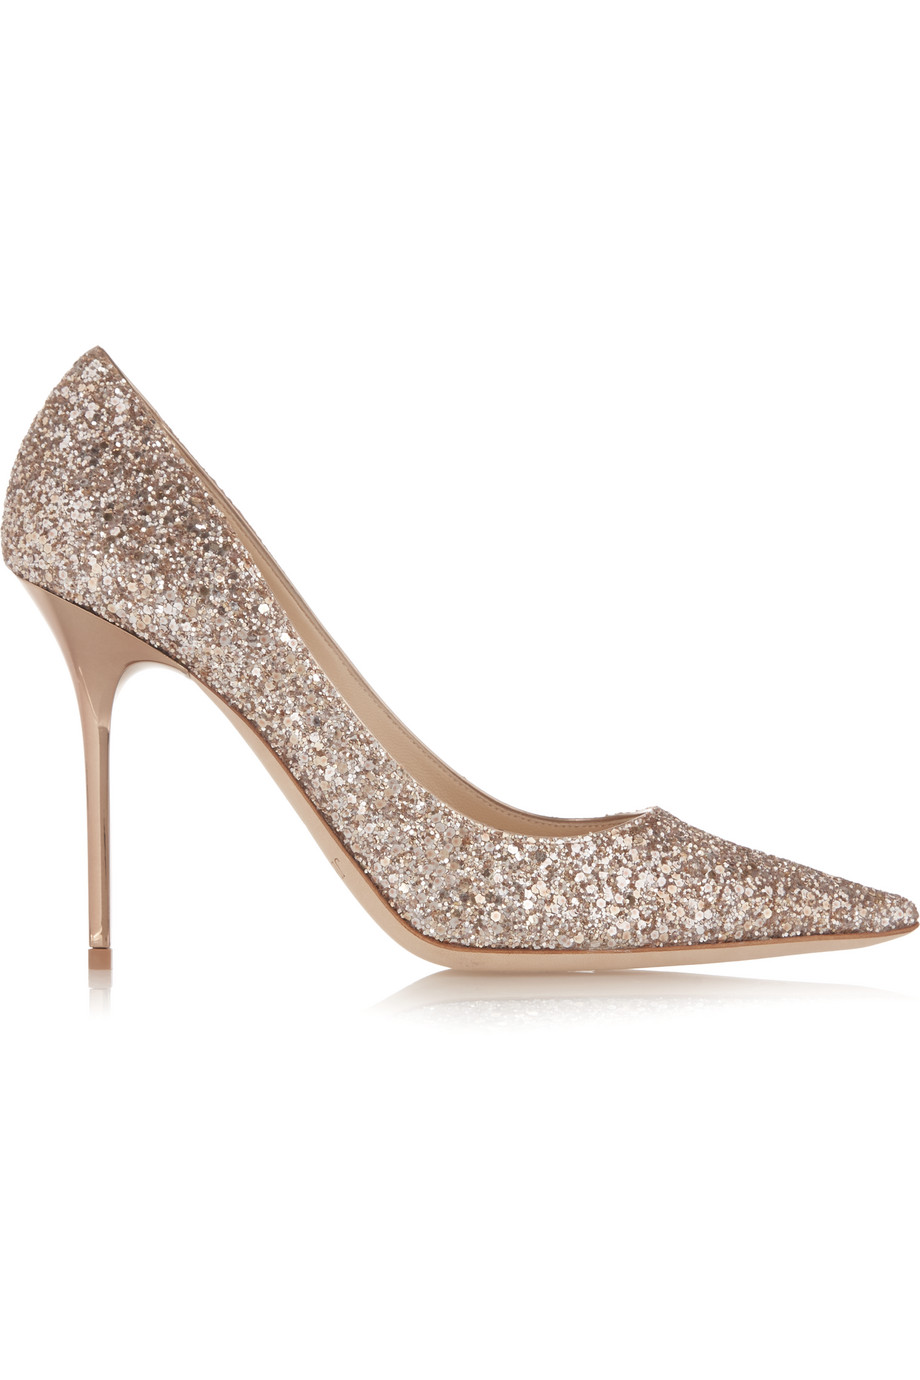 Jimmy Choo Abel Glittered Leather Pumps, Gold, Women's US Size: 10.5, Size: 41